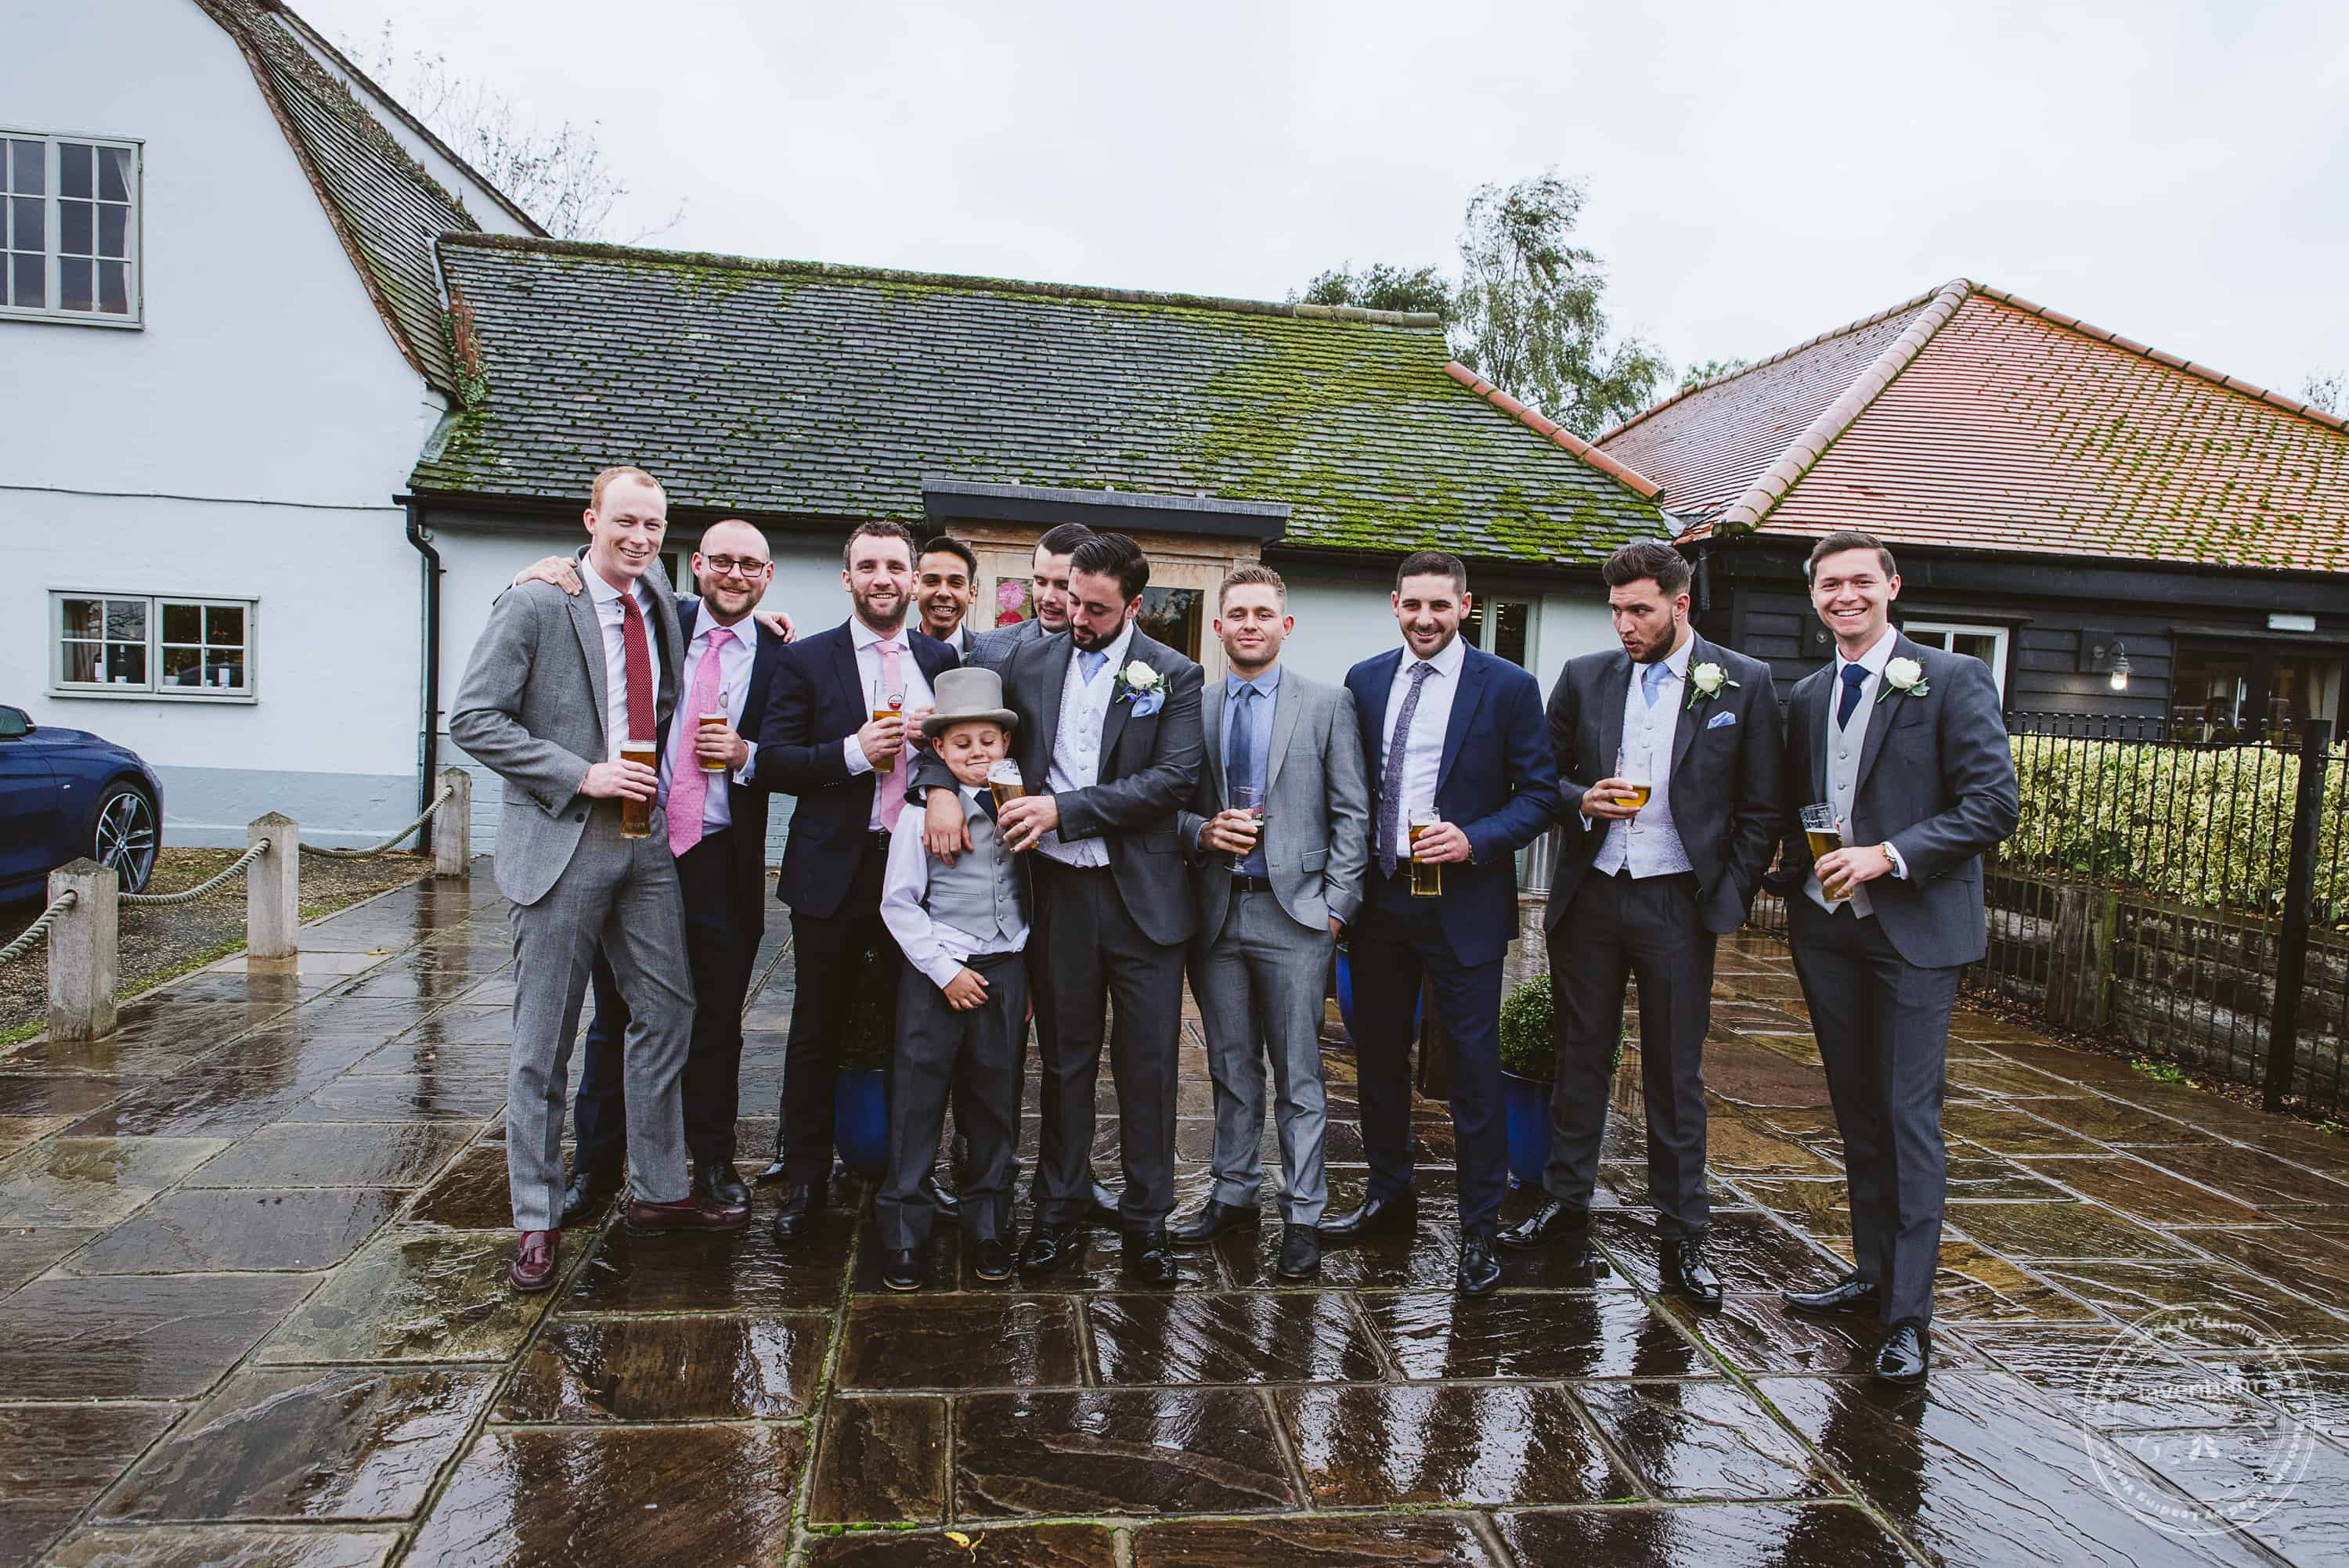 261019 Bull and Willow Room Essex Wedding Photographer 096